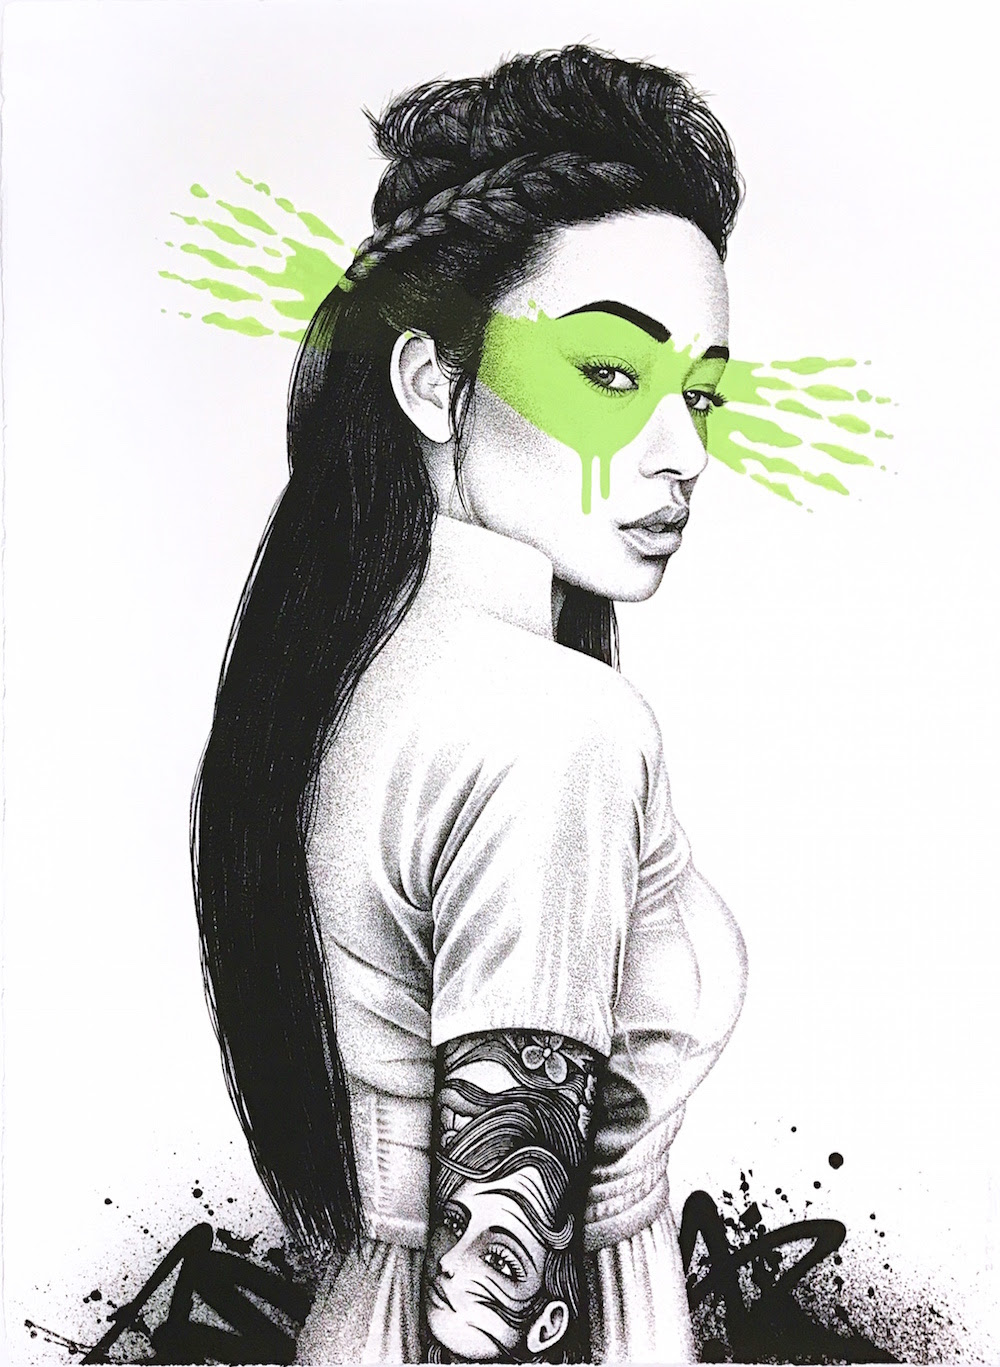 """Shioya"" by FinDAC.  76 x 56cm Screenprint, hand-finished.  Ed of 35 S/N.  250€ ($270)"